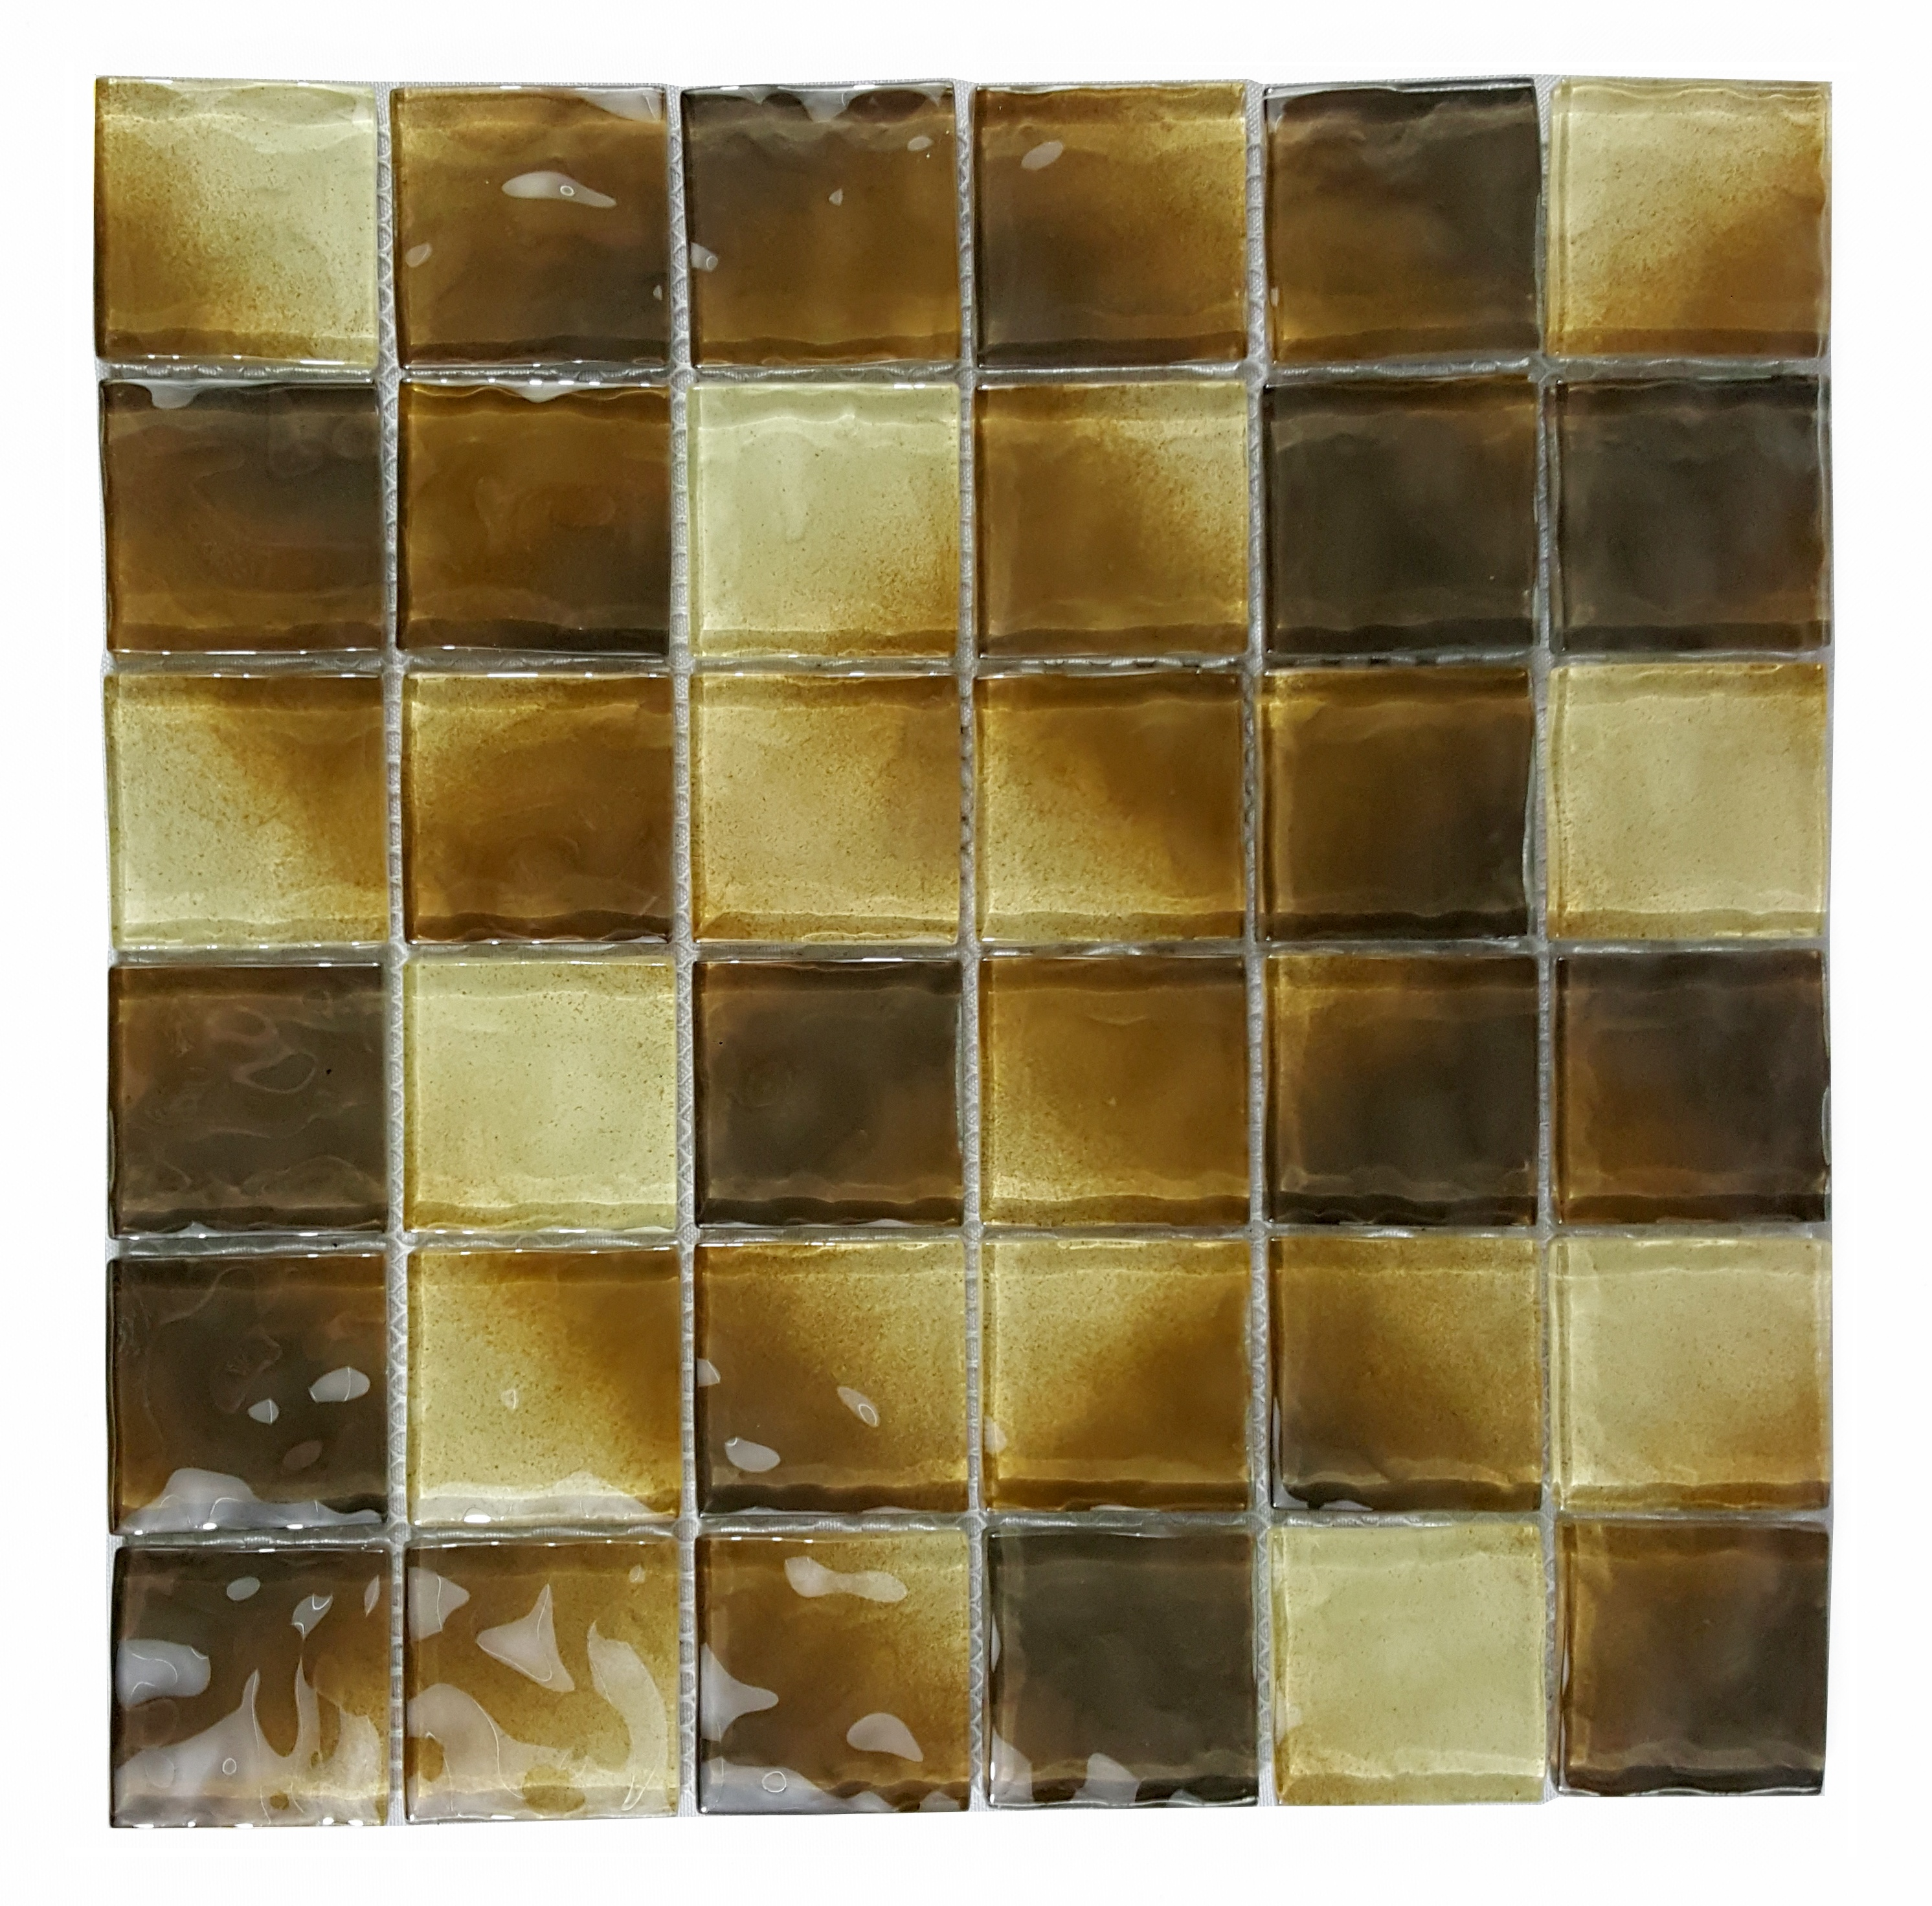 "Watermarks 2"" x 2"" Glossy (Pool Rated) Brown Glass Brick Backsplash Mosaic Wall Tile"